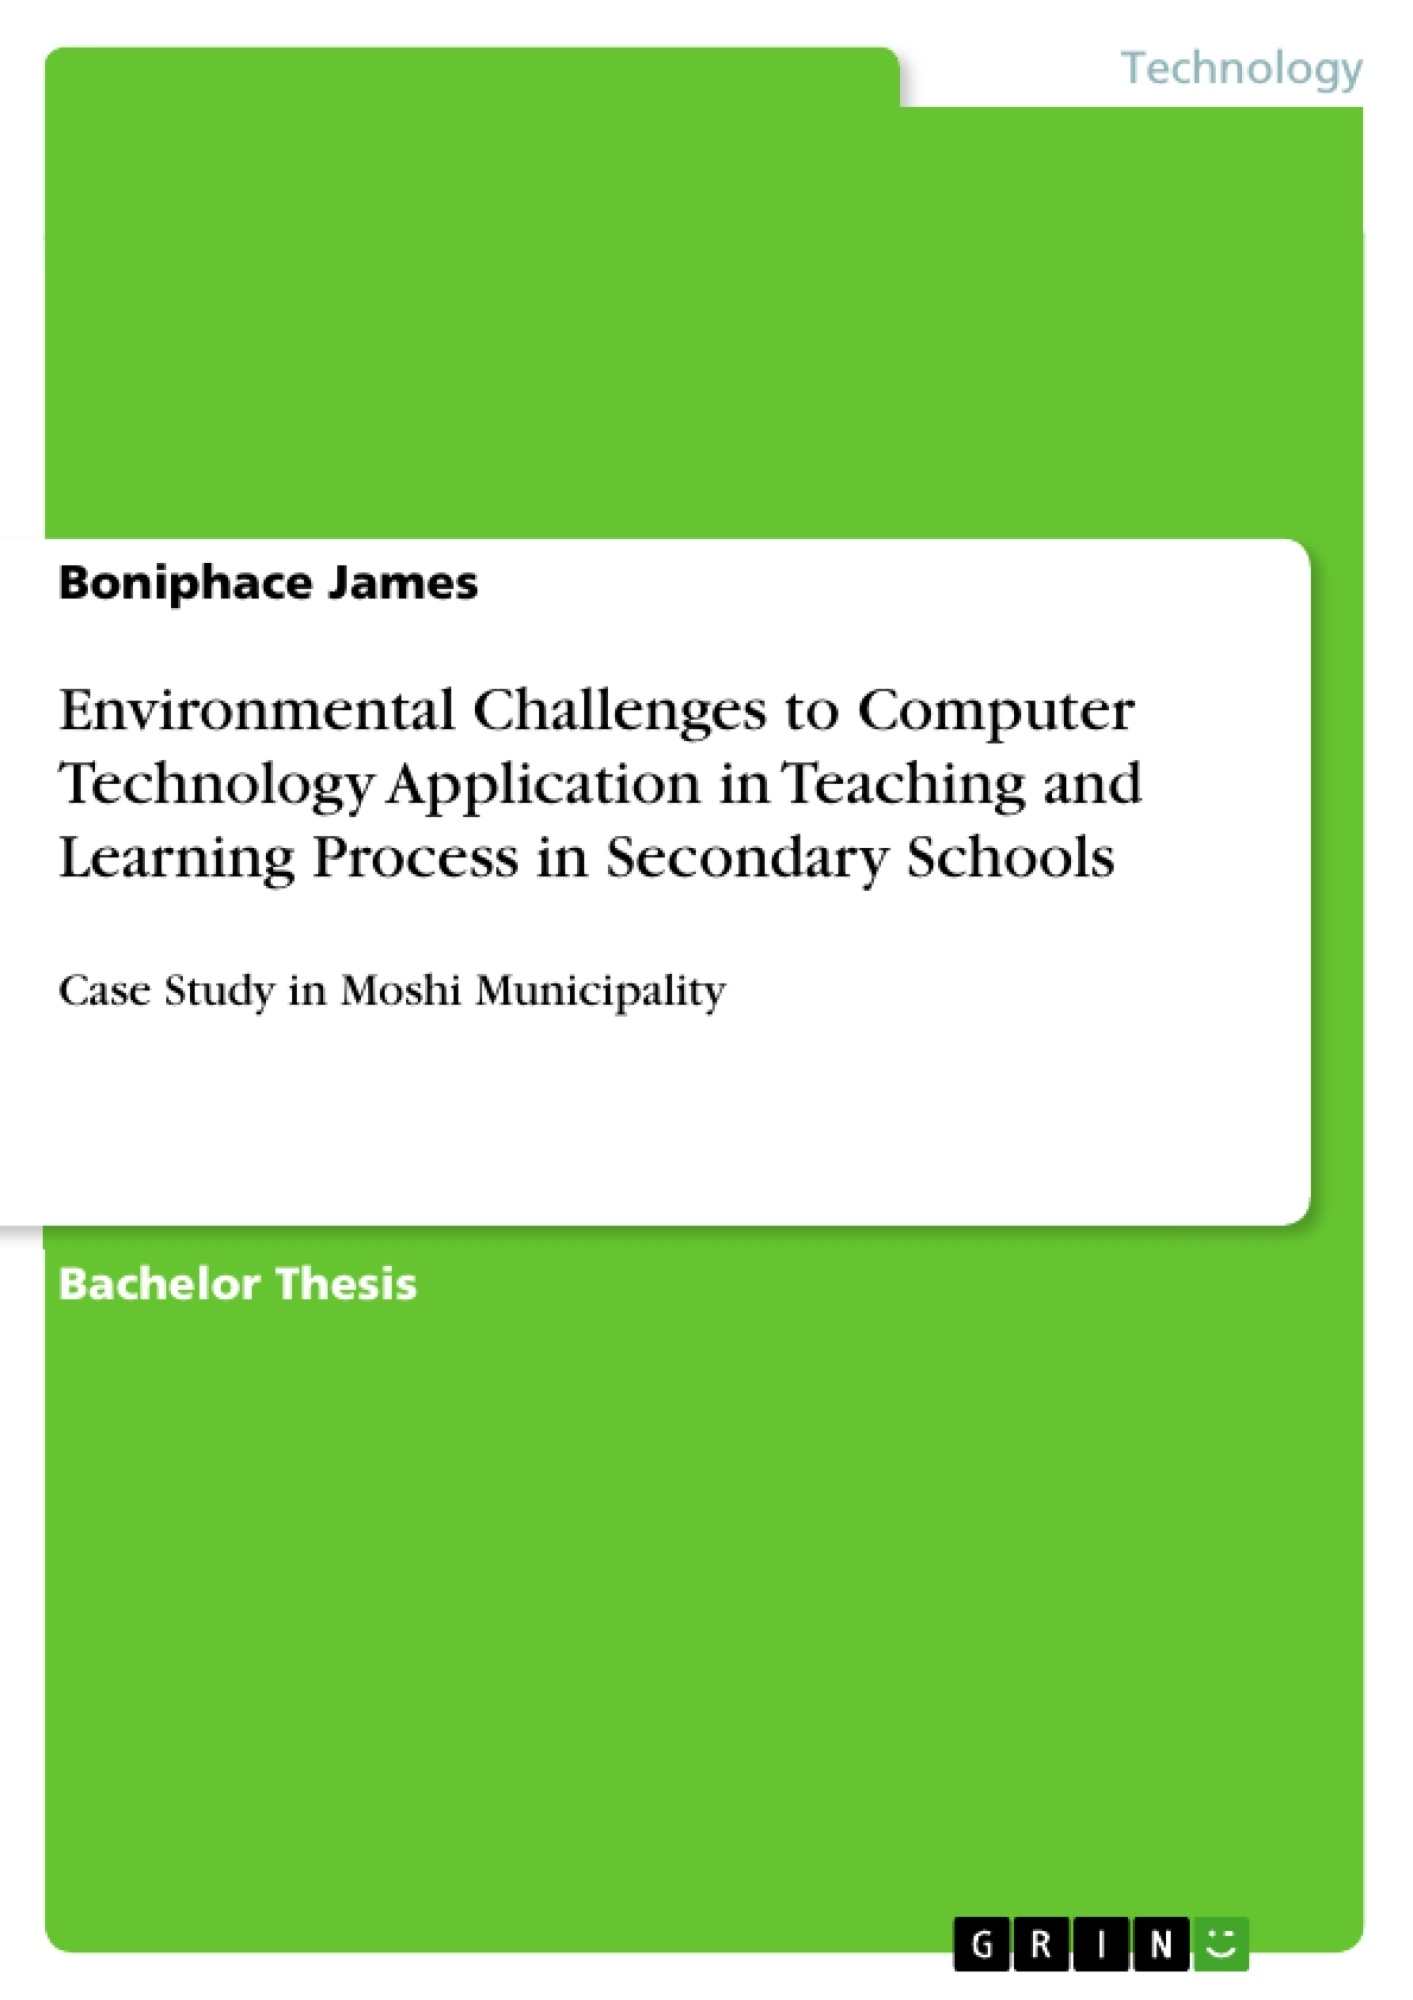 Title: Environmental Challenges to Computer Technology Application in Teaching and Learning Process in Secondary Schools